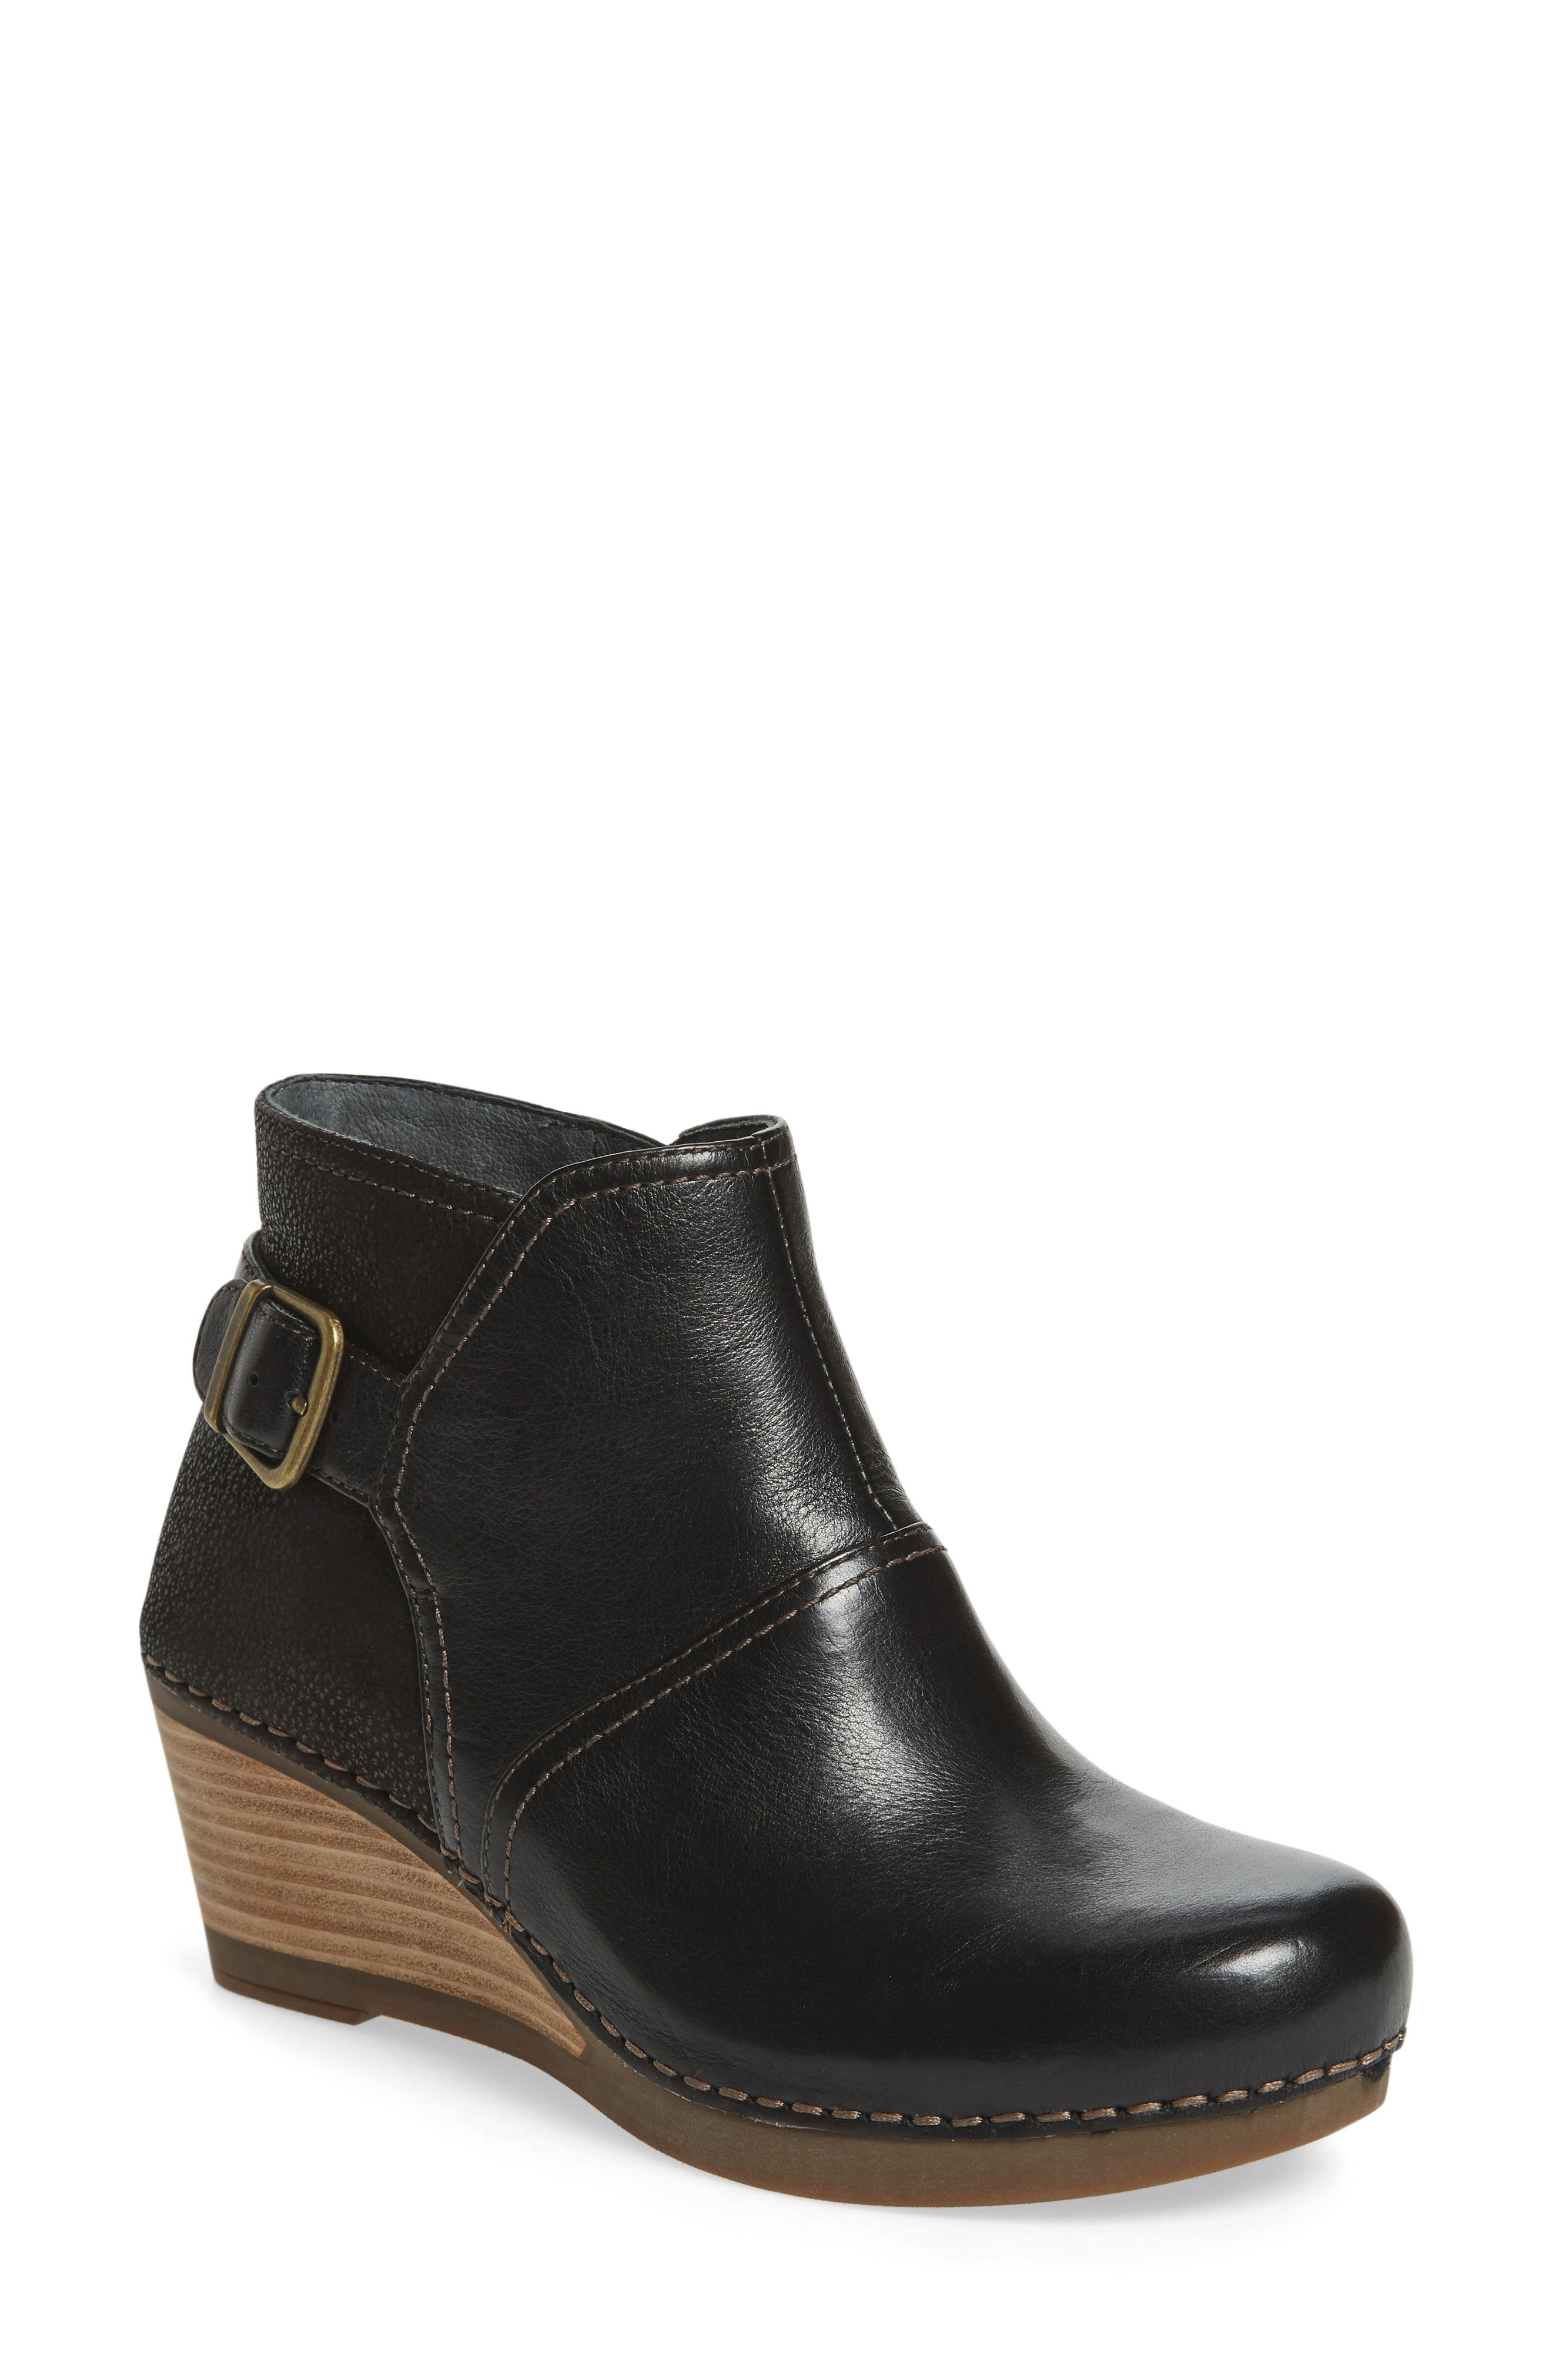 'Shirley' Wedge Bootie,                             Main thumbnail 2, color,